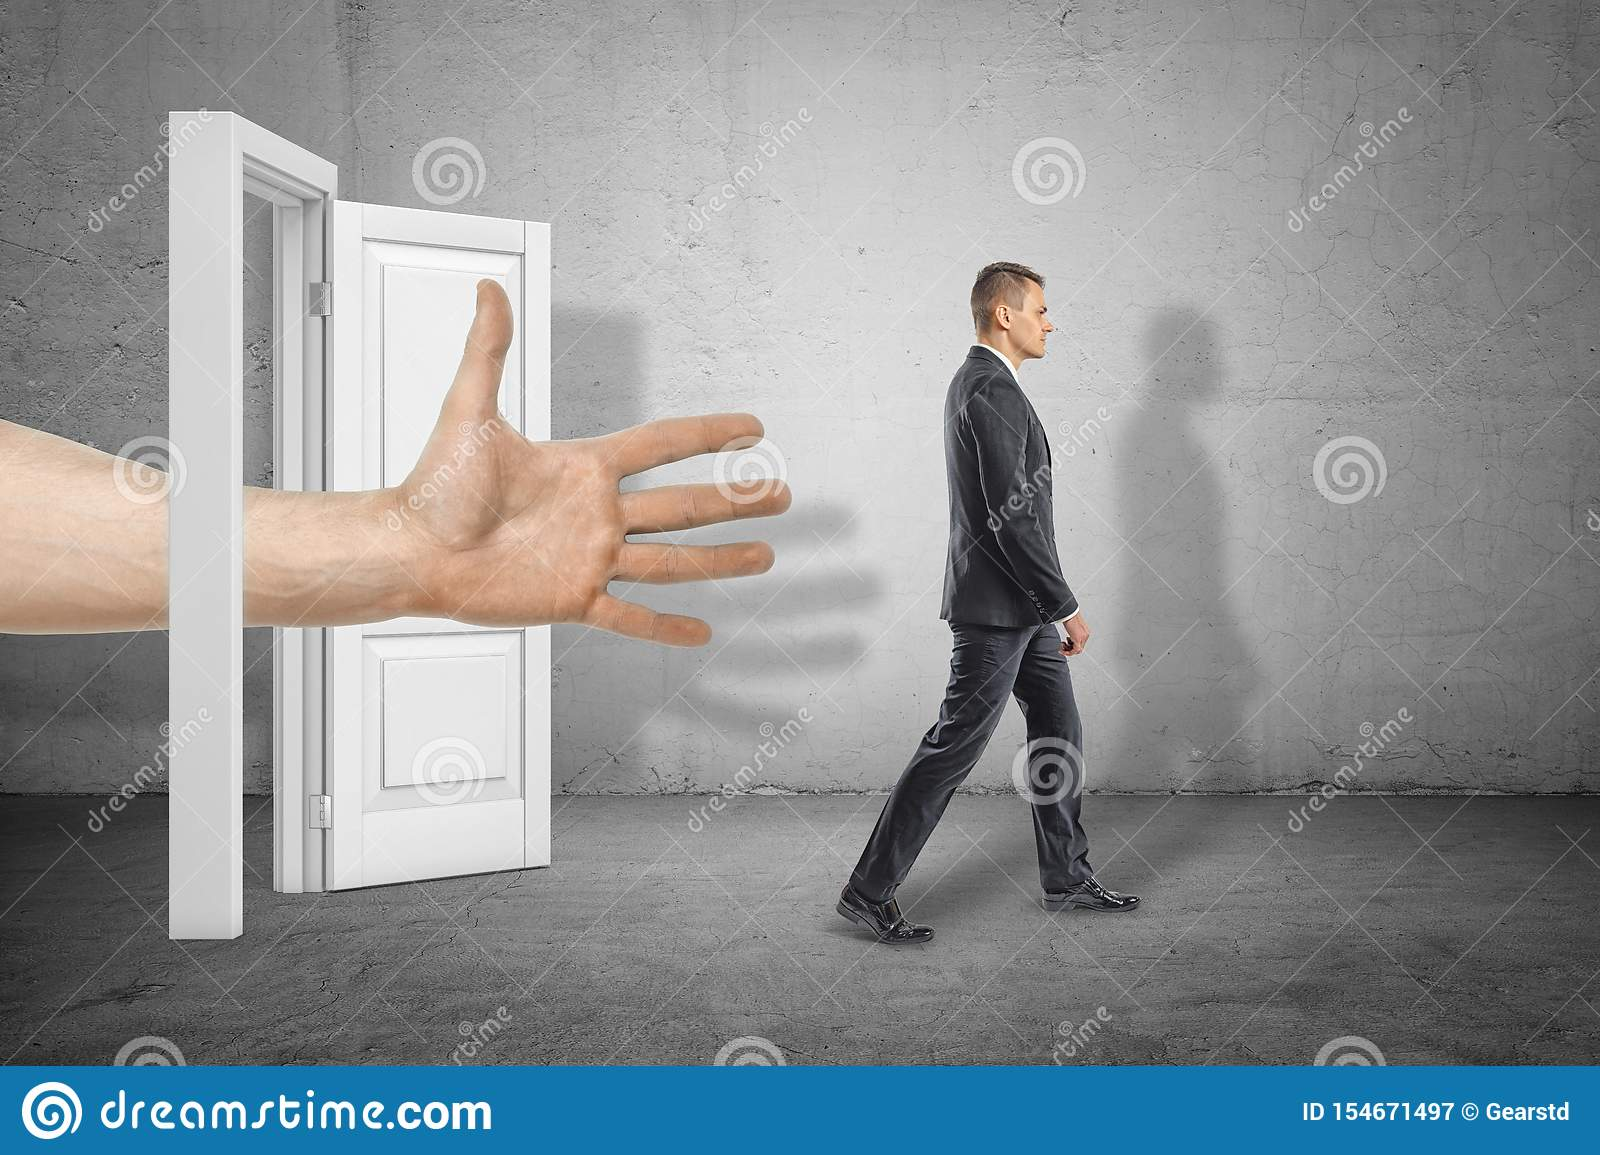 Big male open hand reaching through white doorway to young businessman who is walking away on grey wall background